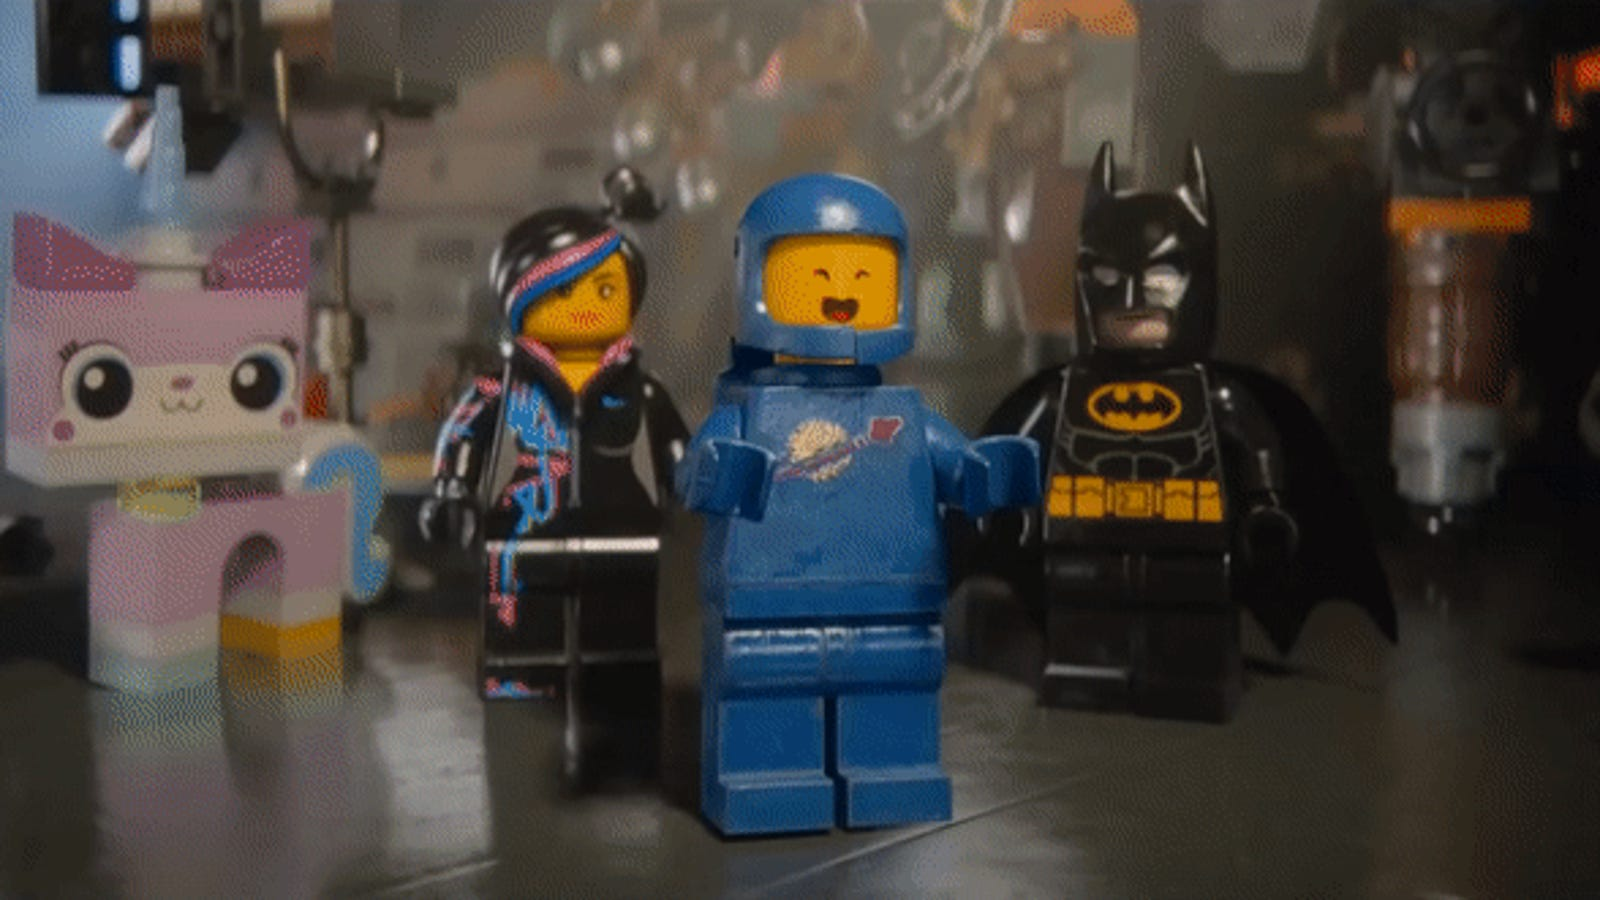 Warner Bros Is Streaming The Lego Movie On Youtube All Day For Free